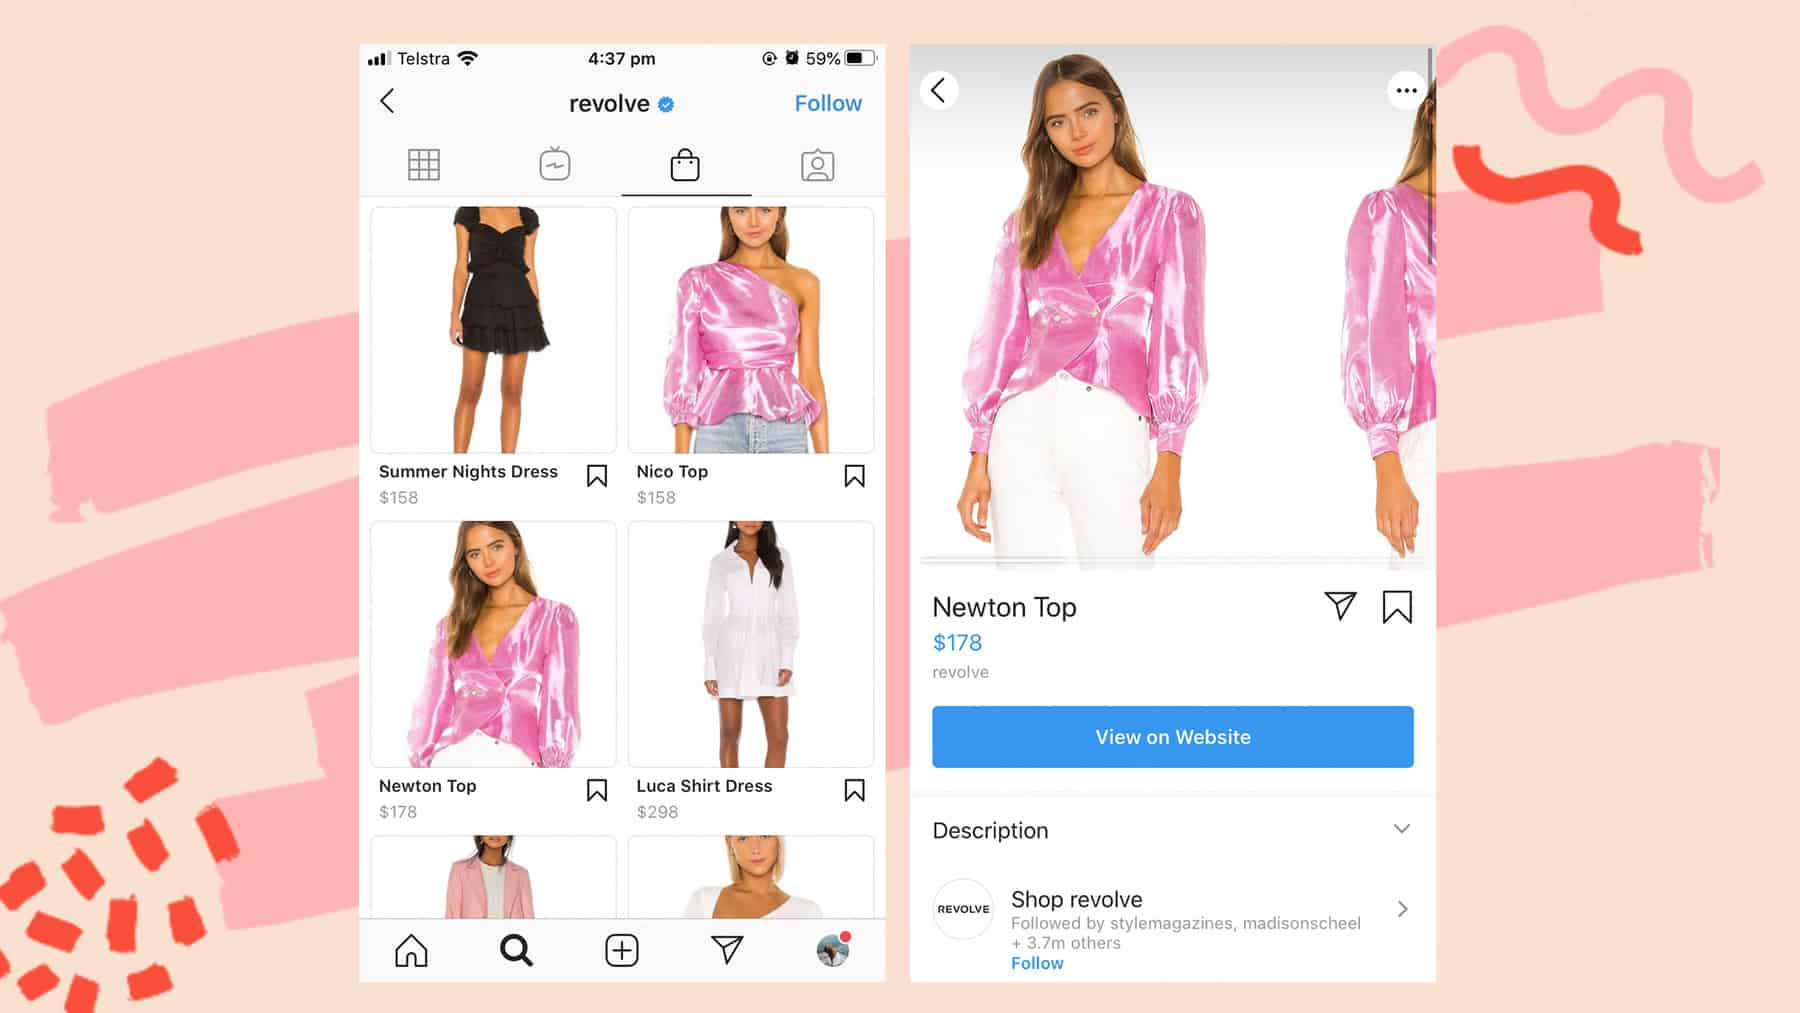 Instagram Shopping: Everything You Need to Know About the New Checkout Feature Allowing You to Shop On Platform - Business 2 Community